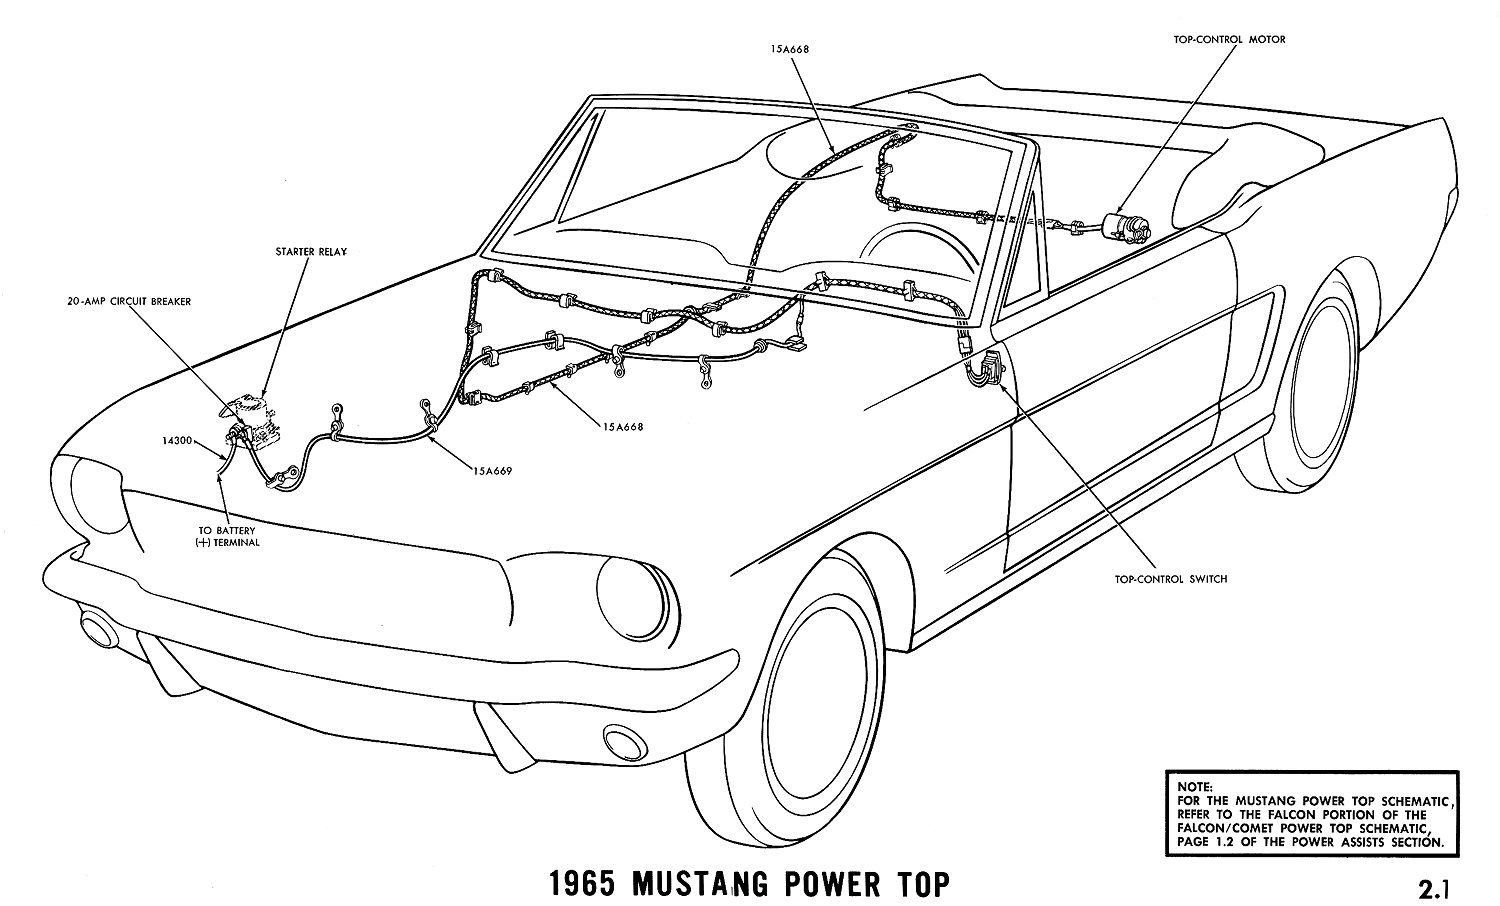 1965j 1965 mustang wiring diagrams average joe restoration Equus Fuel Gauge Wiring Diagram at bakdesigns.co